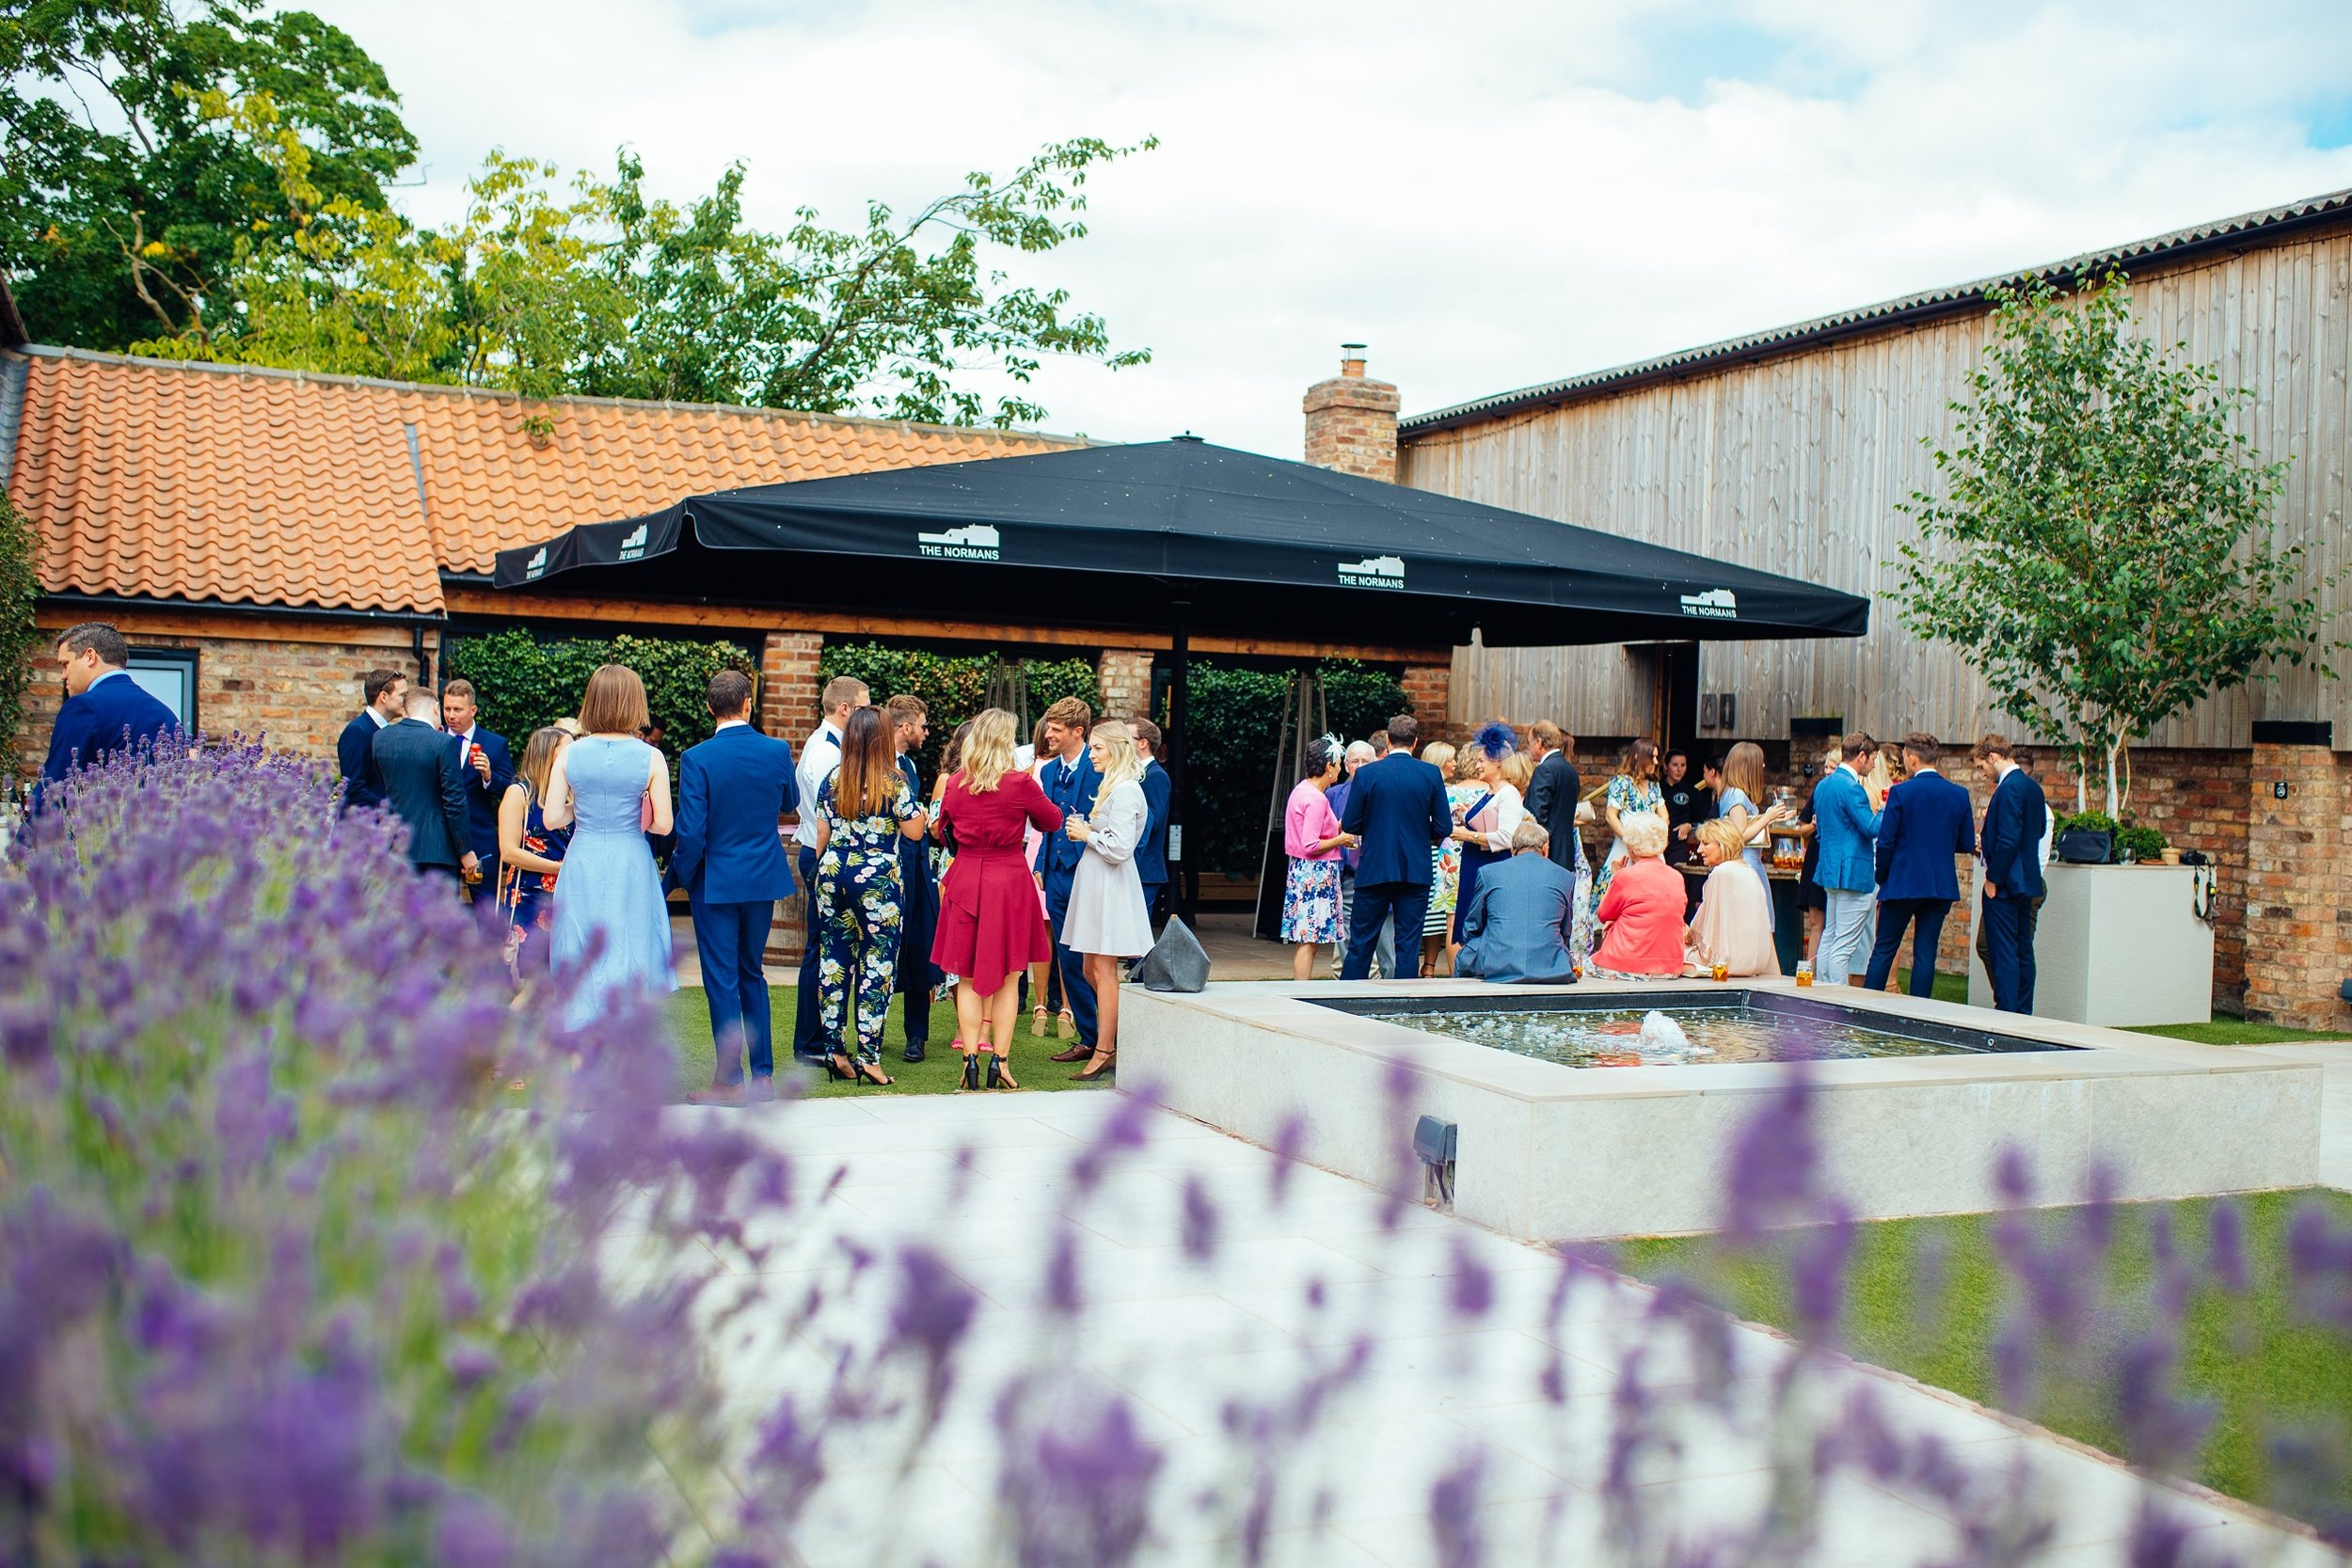 Mingle amidst the lavender at The Normans Mingle amidst the lavender at The Normans Photo by www.hamishirvine.com